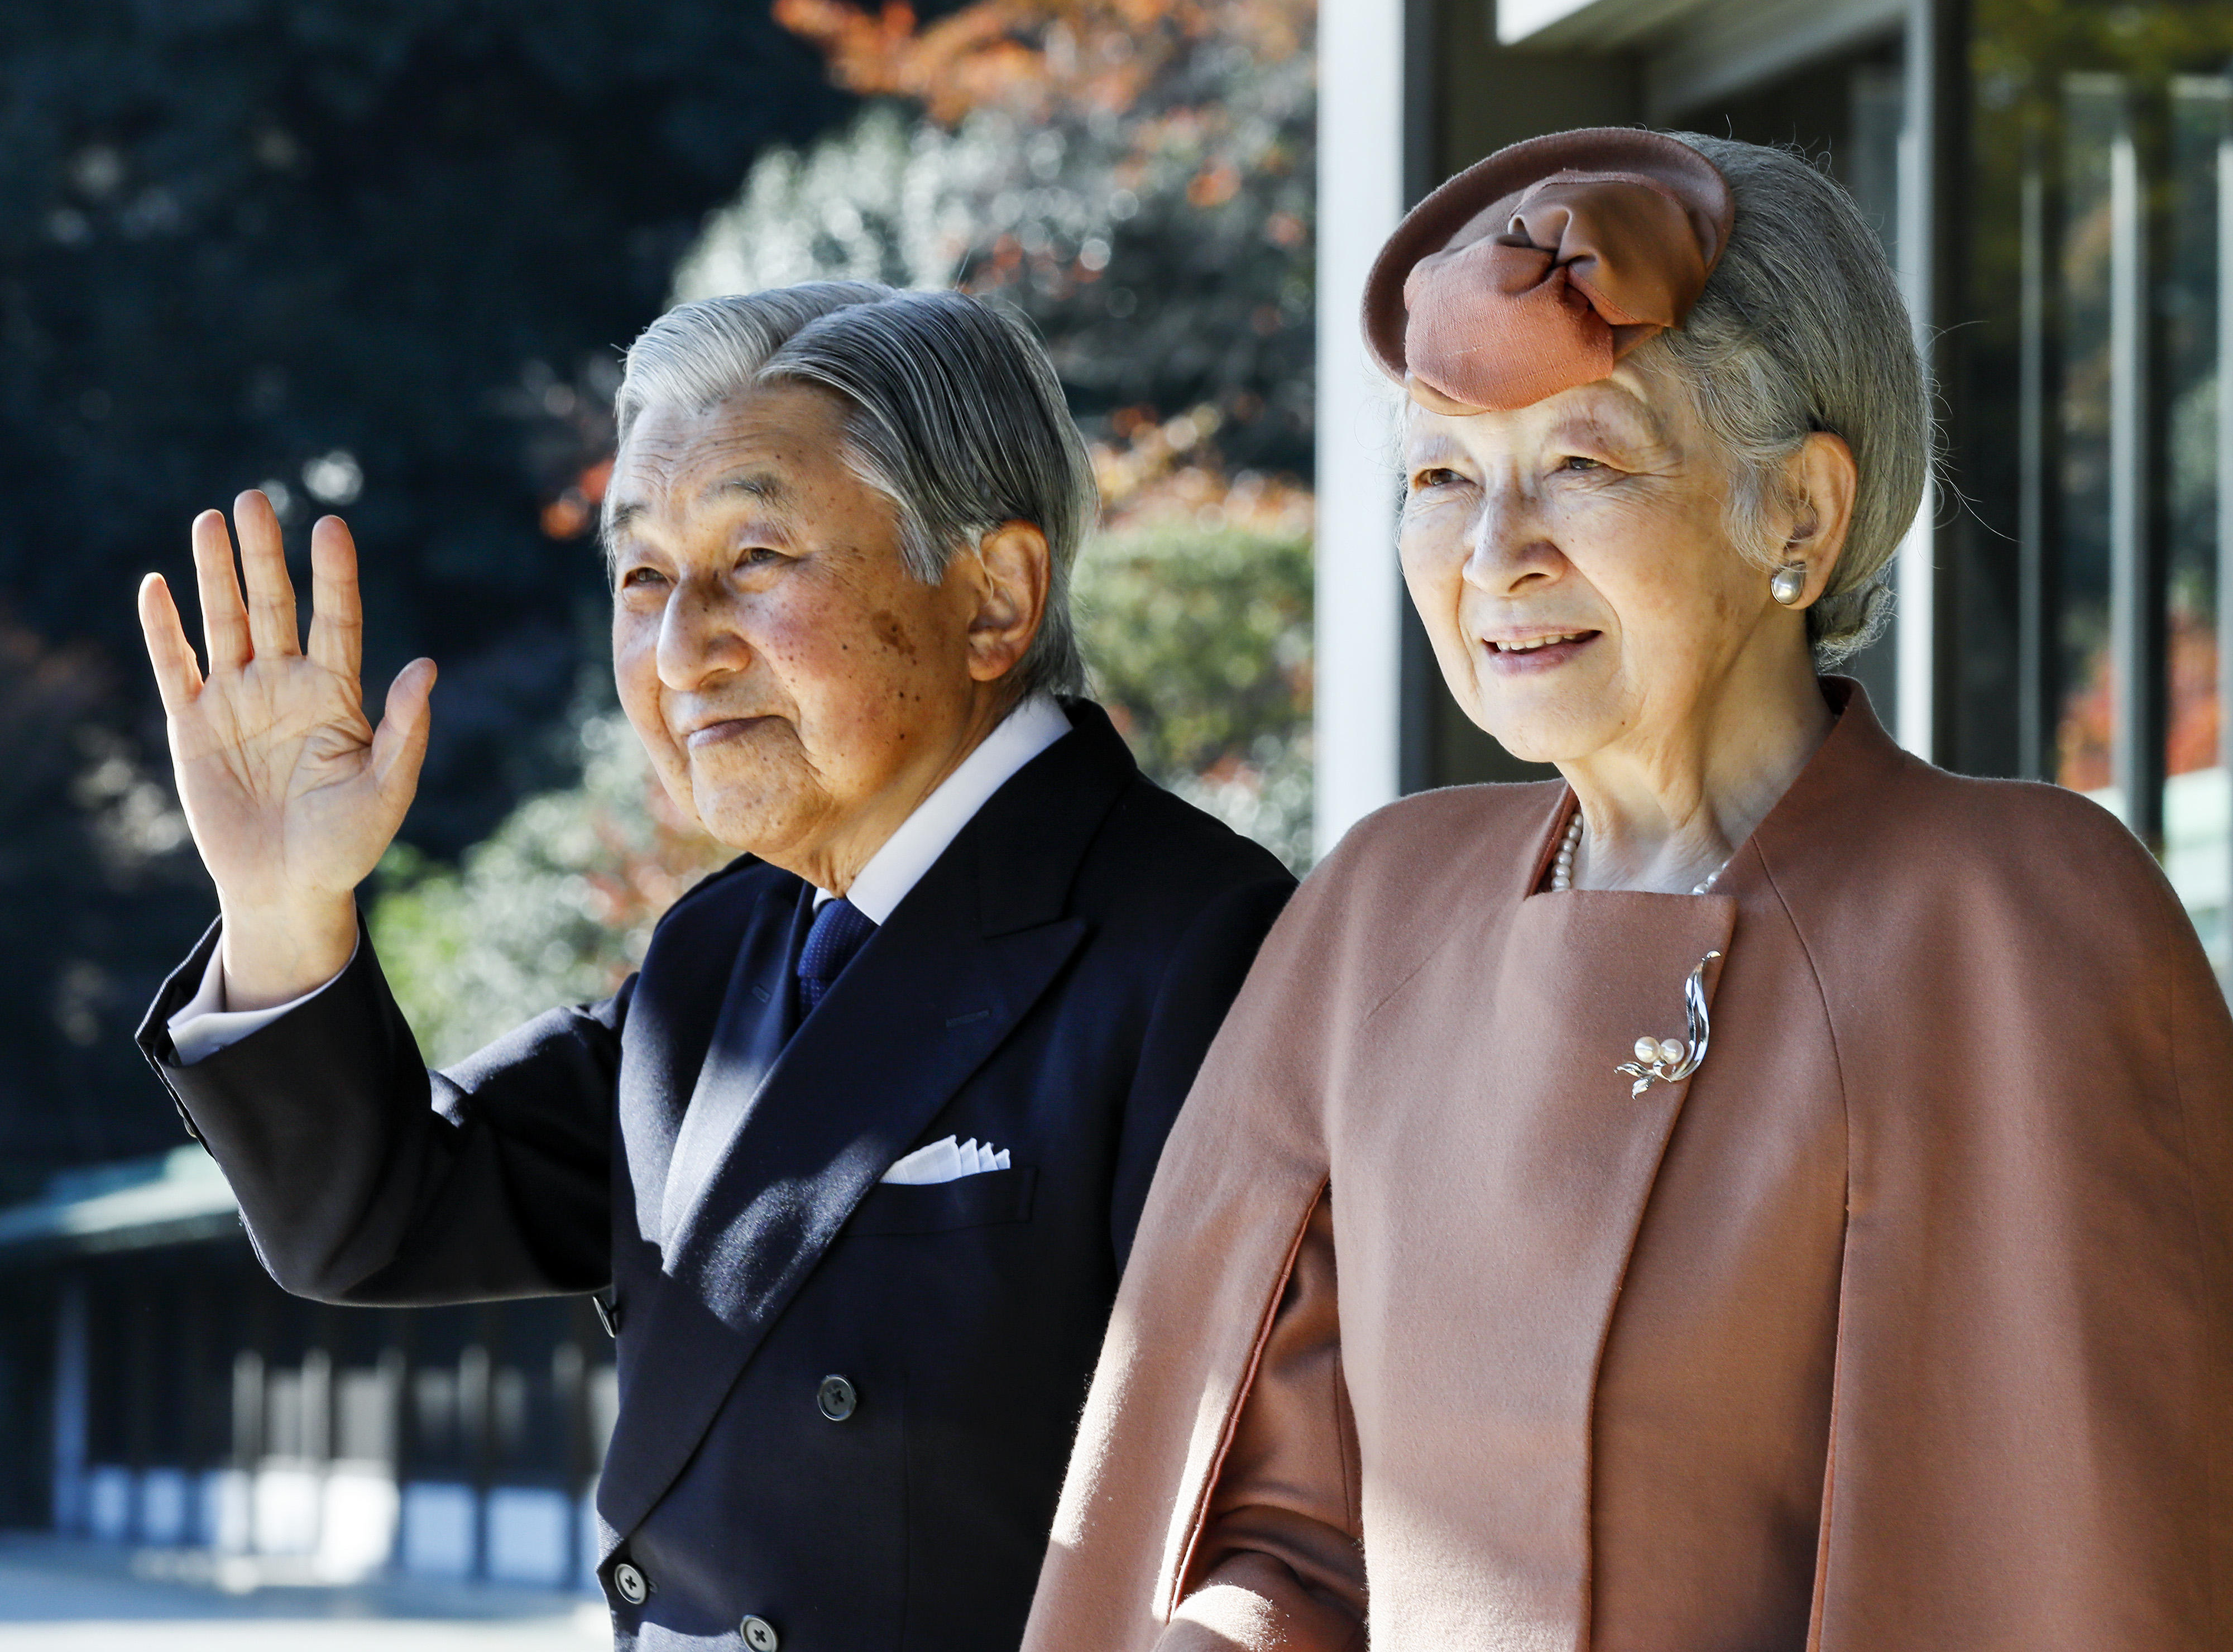 Dc5n United States Mix In English Created At 2017 12 01 1226 Tendencies Kaos Beastie Boys Japan Navy M Tokyo Japans Much Admired Emperor Akihito Is Set To Abdicate On April 302019 Age 85 The First Such Departure From Chrysanthemum Throne